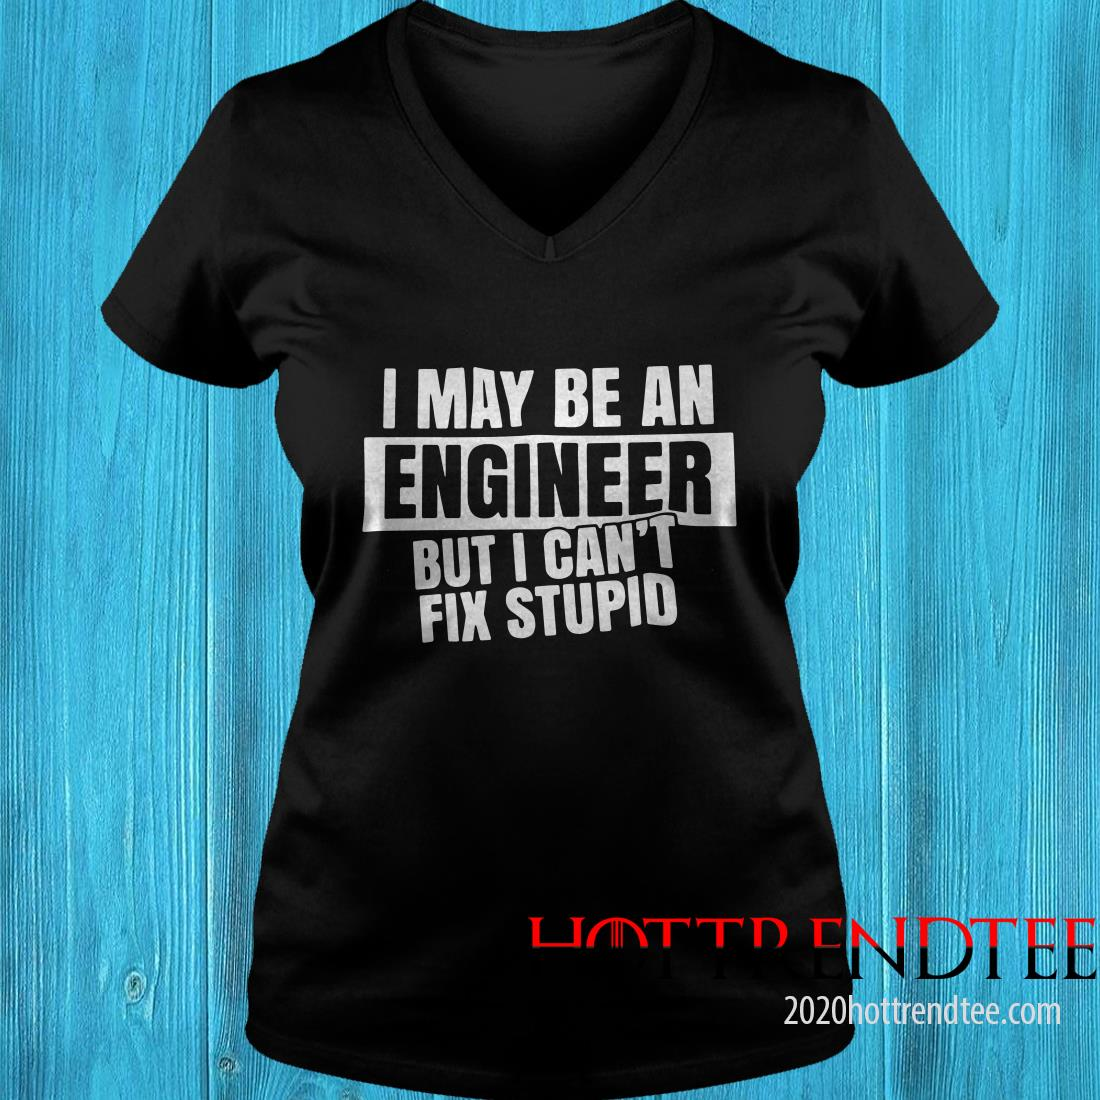 I May Be An Engineer But I Can't Fix Stupid Women's T-Shirt